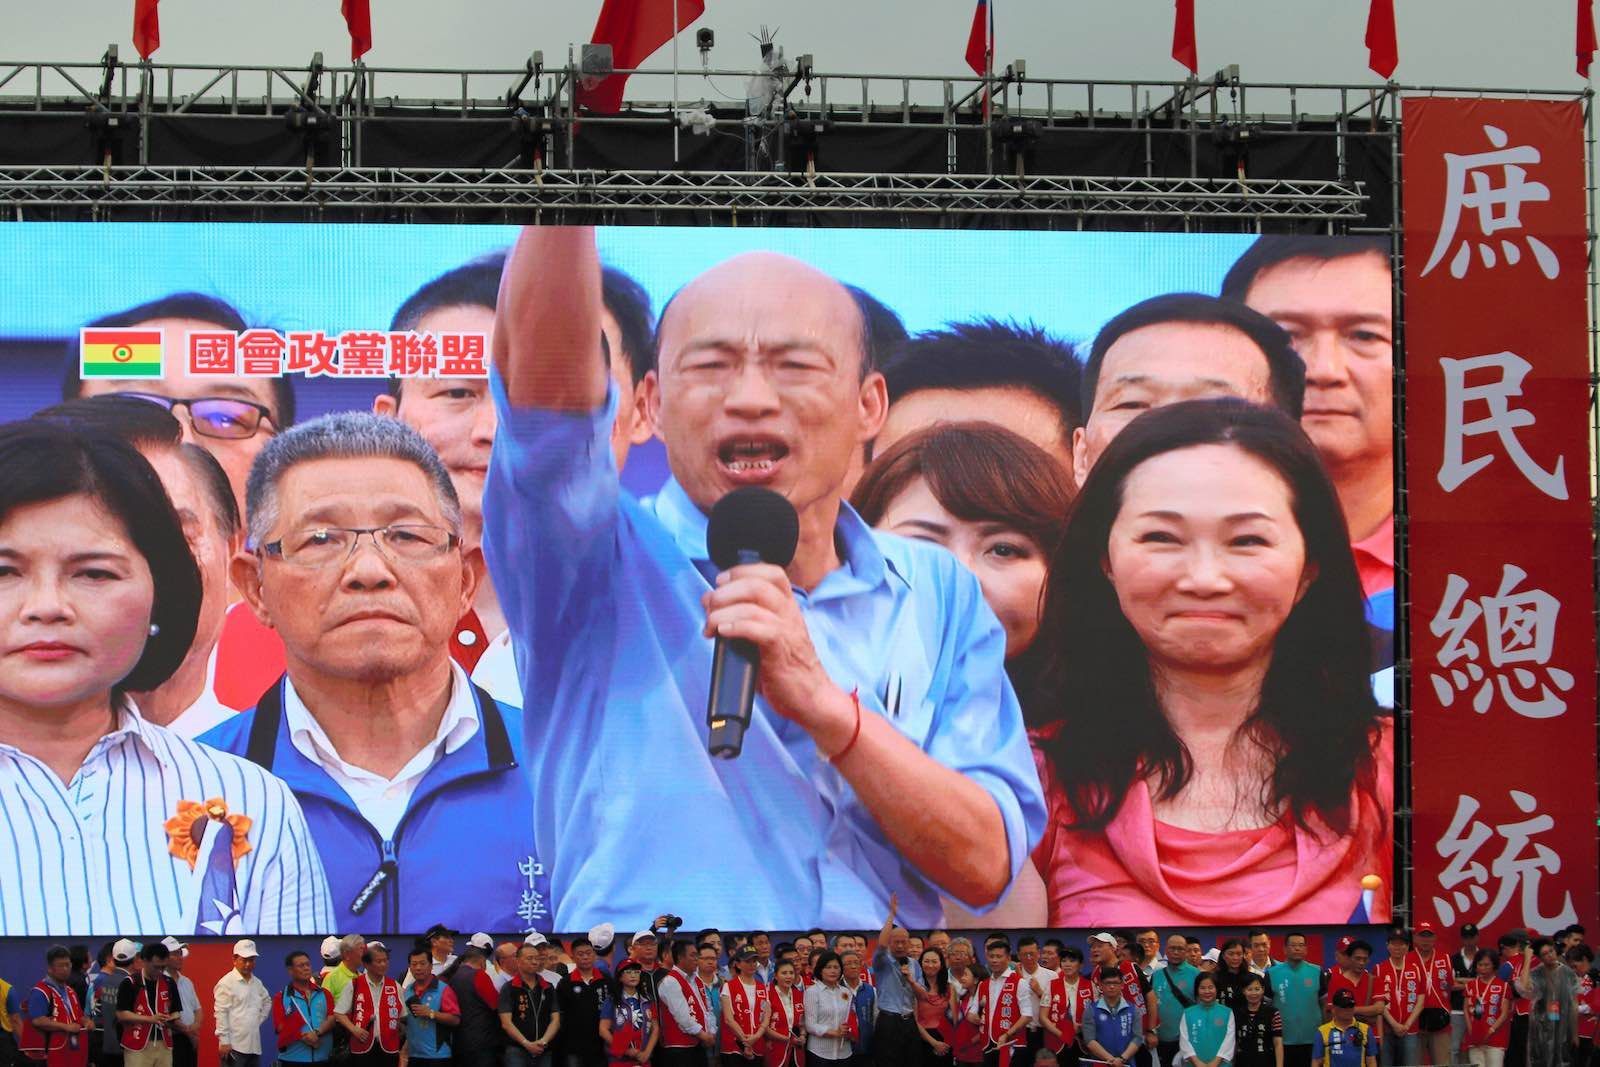 Kaohsiung Mayor Han Kuo-yu announces his run for Taiwan Presidential election (Photo: Asahi Shimbun via Getty)